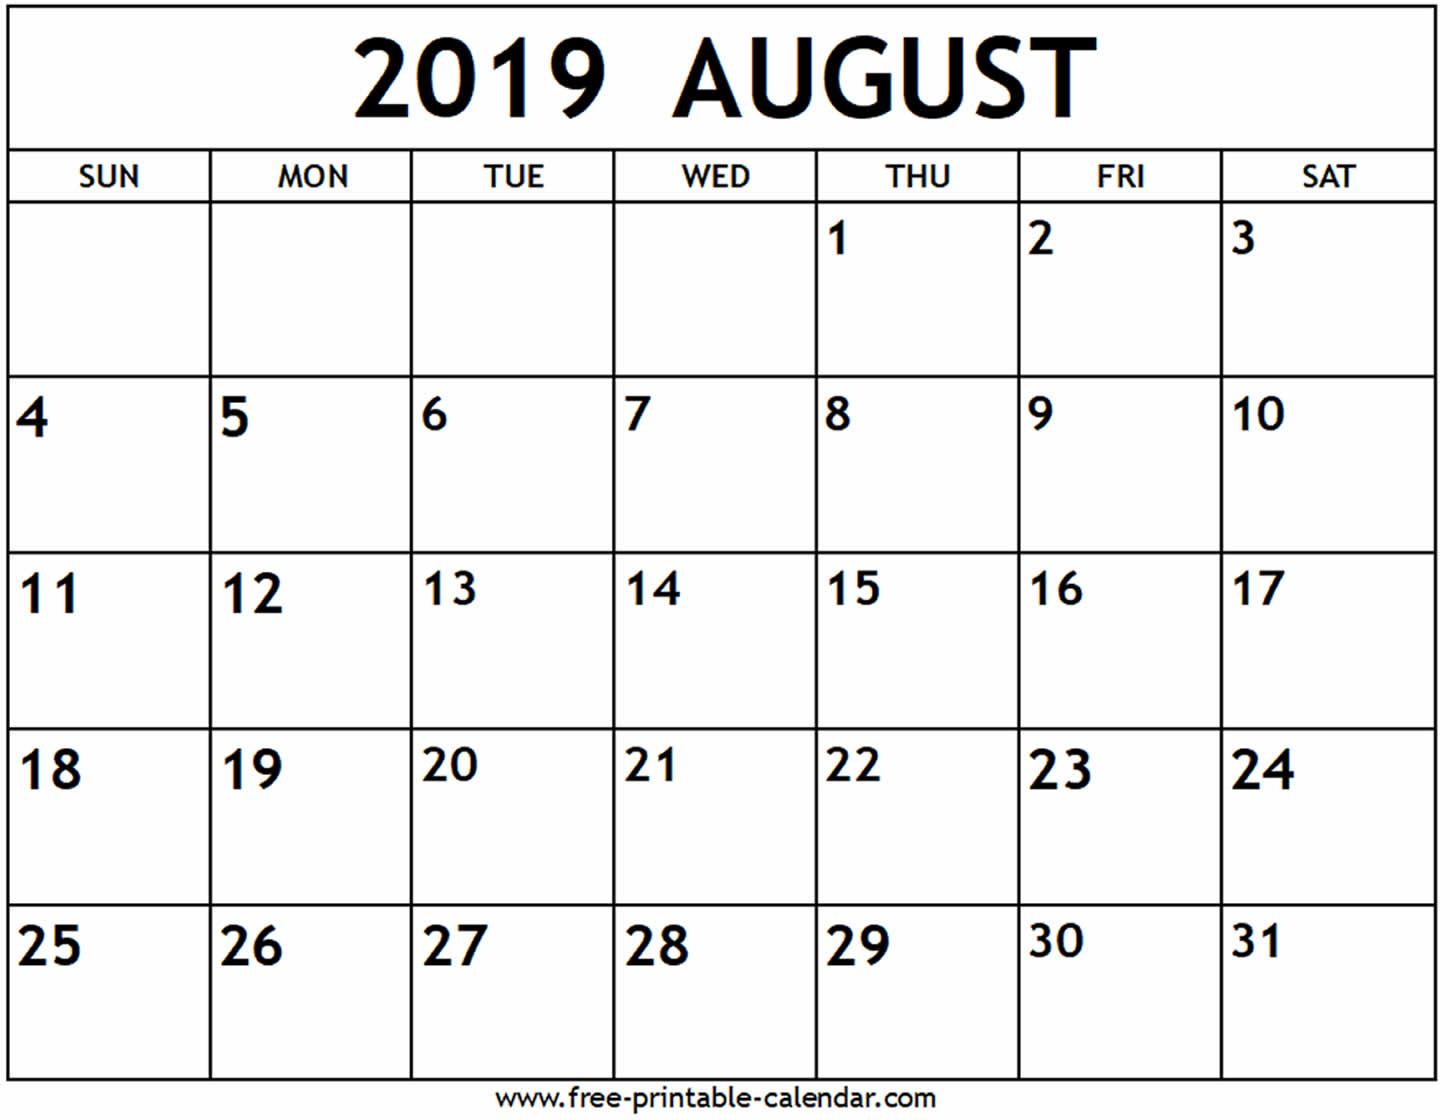 August 2019 Calendar - Free-Printable-Calendar intended for August Blank Calendar Template